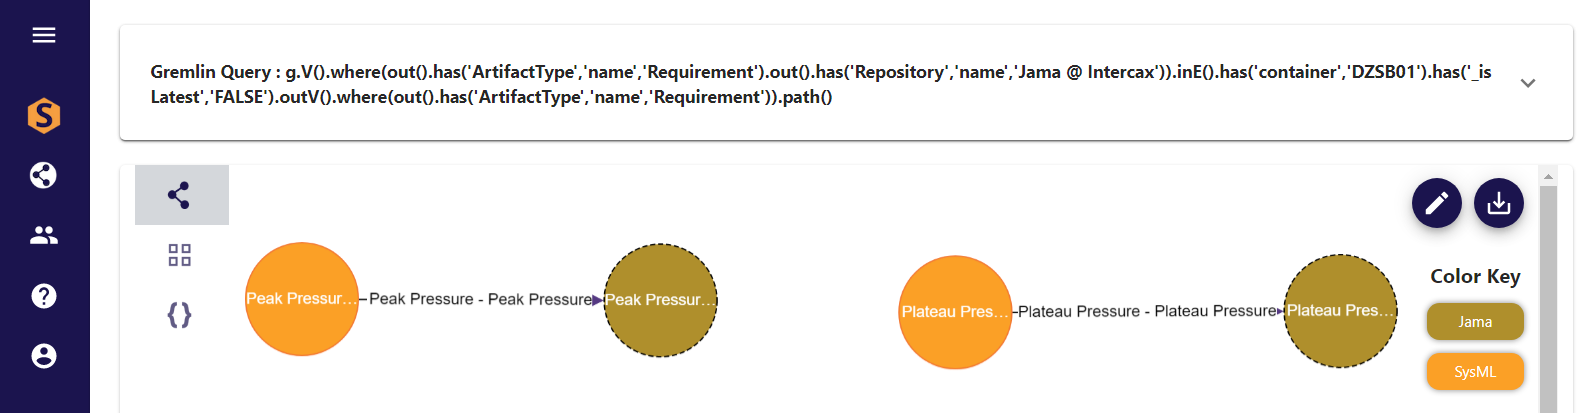 Figure 6 Gremlin query – Jama requirement – SysML requirement, _isLatest = FALSE